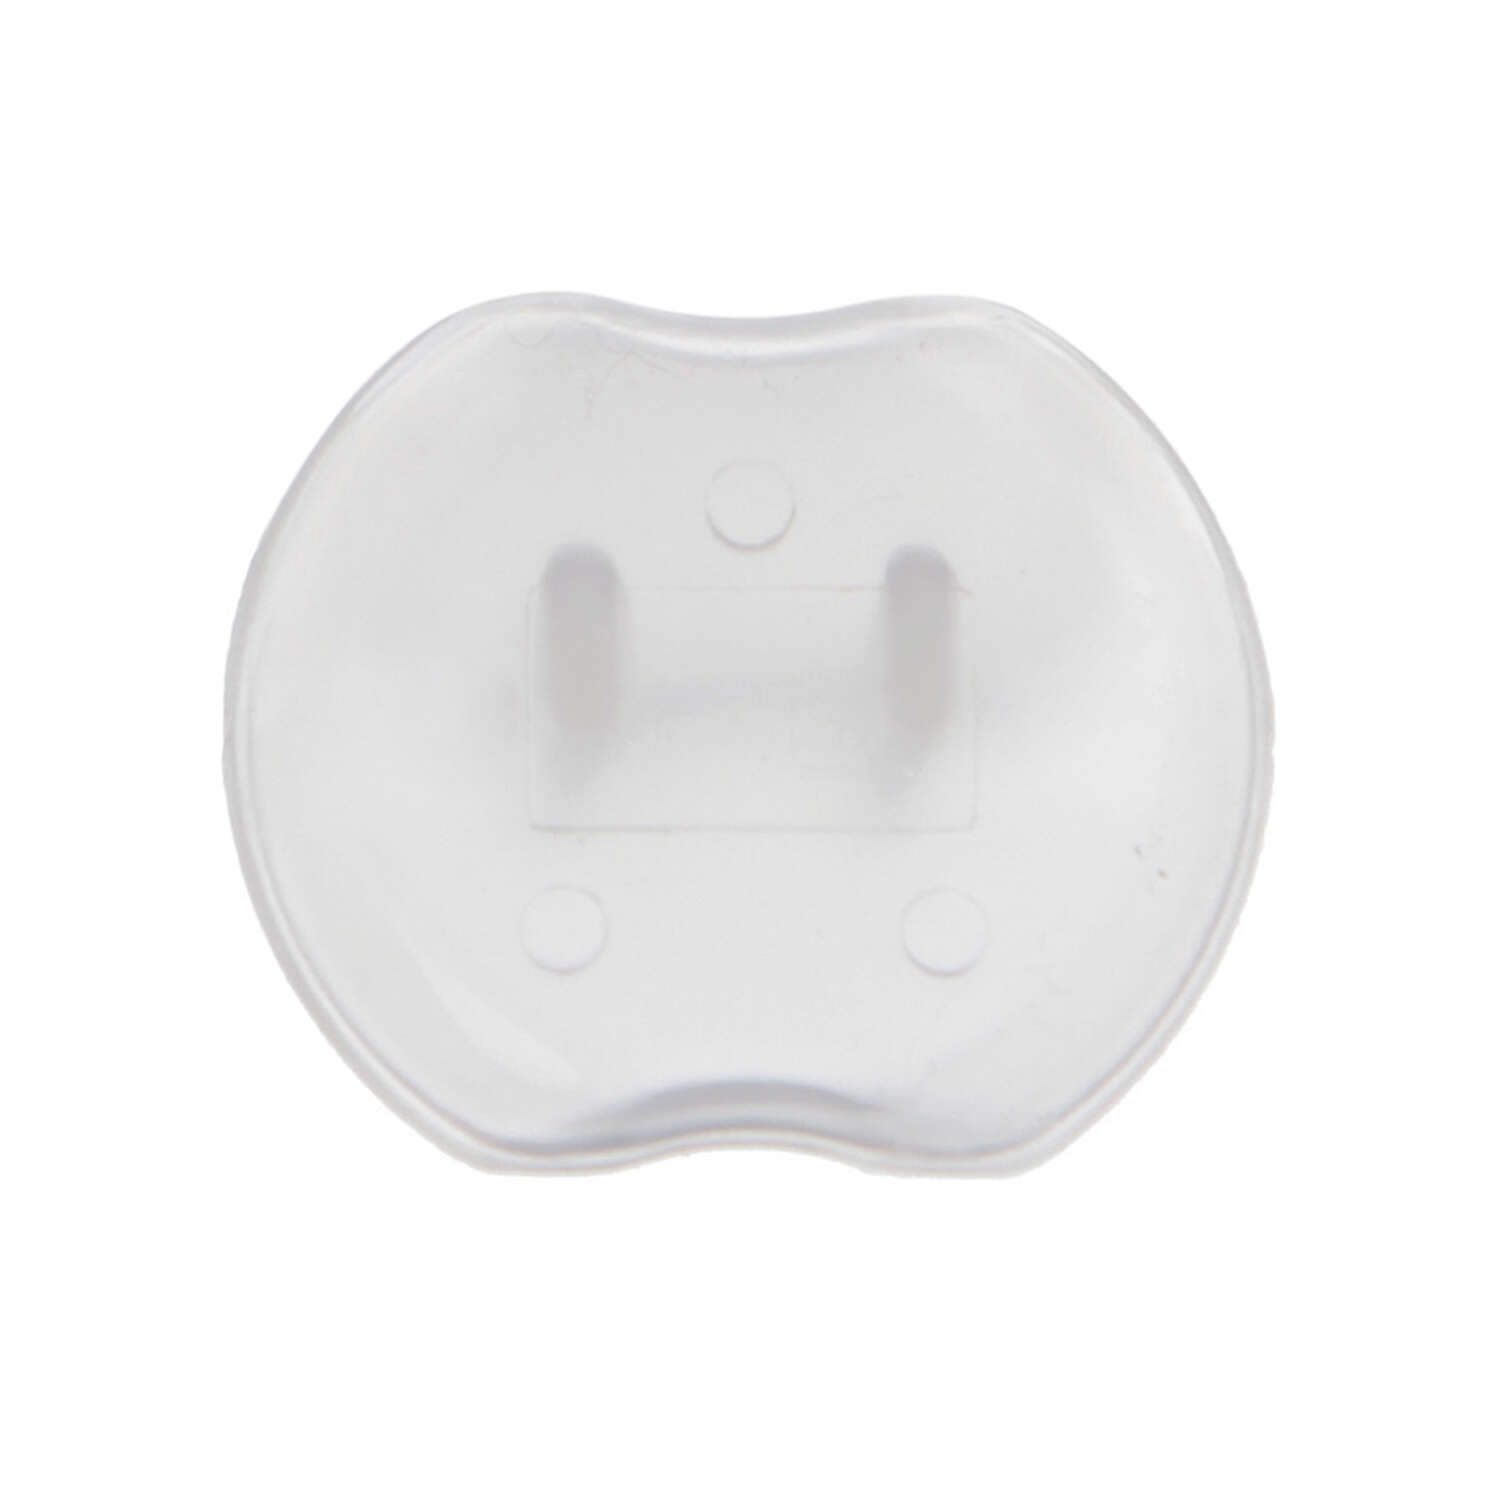 Dreambaby  Translucent  Plastic  Outlet Plug  24 pk